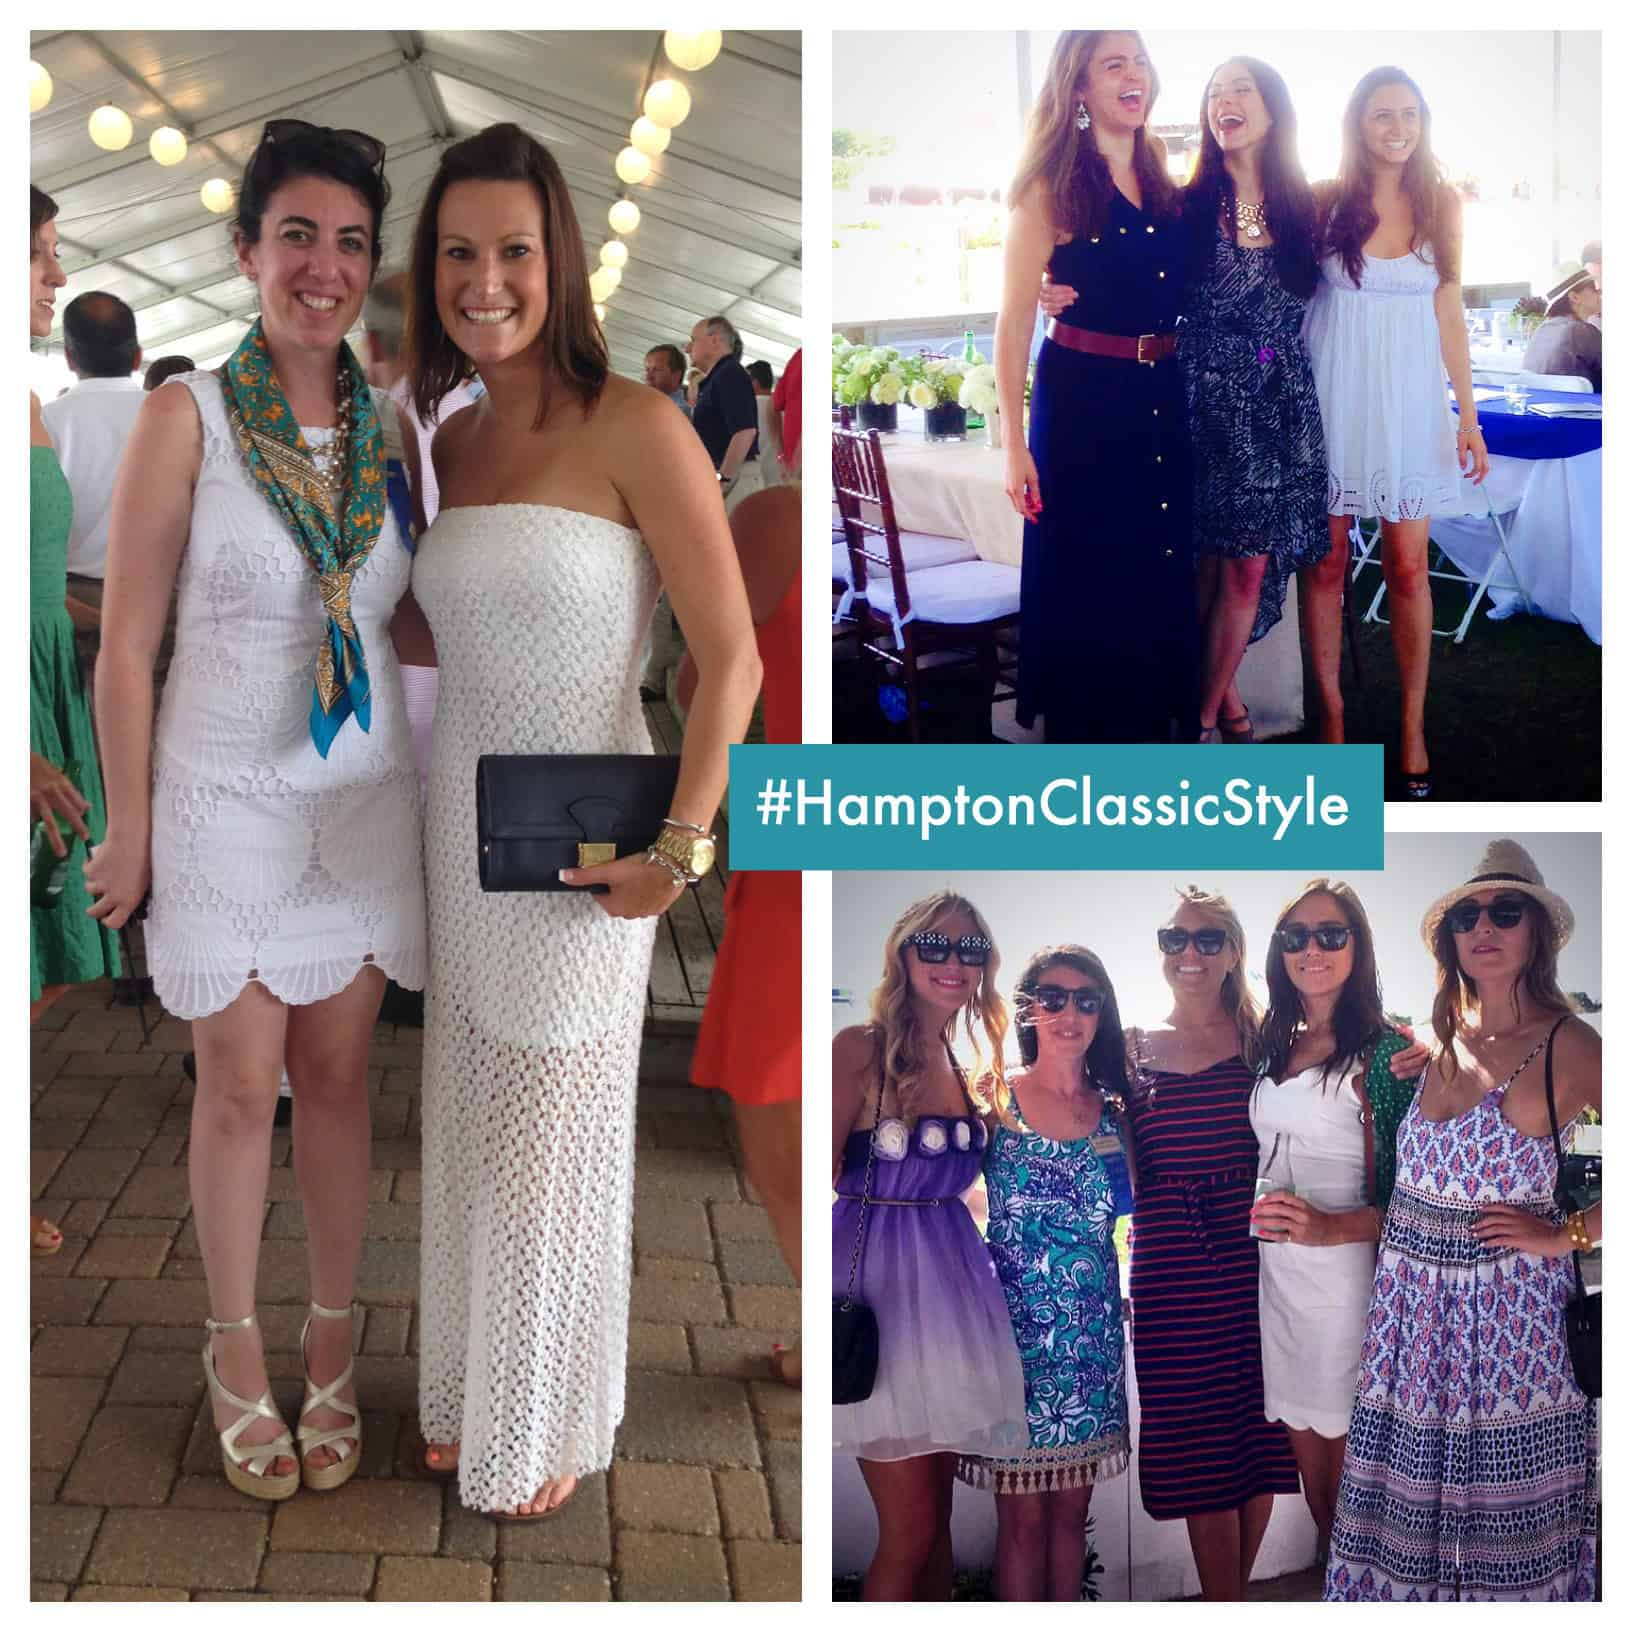 Hamptonclassicstyle From The 2014 Hampton Classic Equestrian Stylist